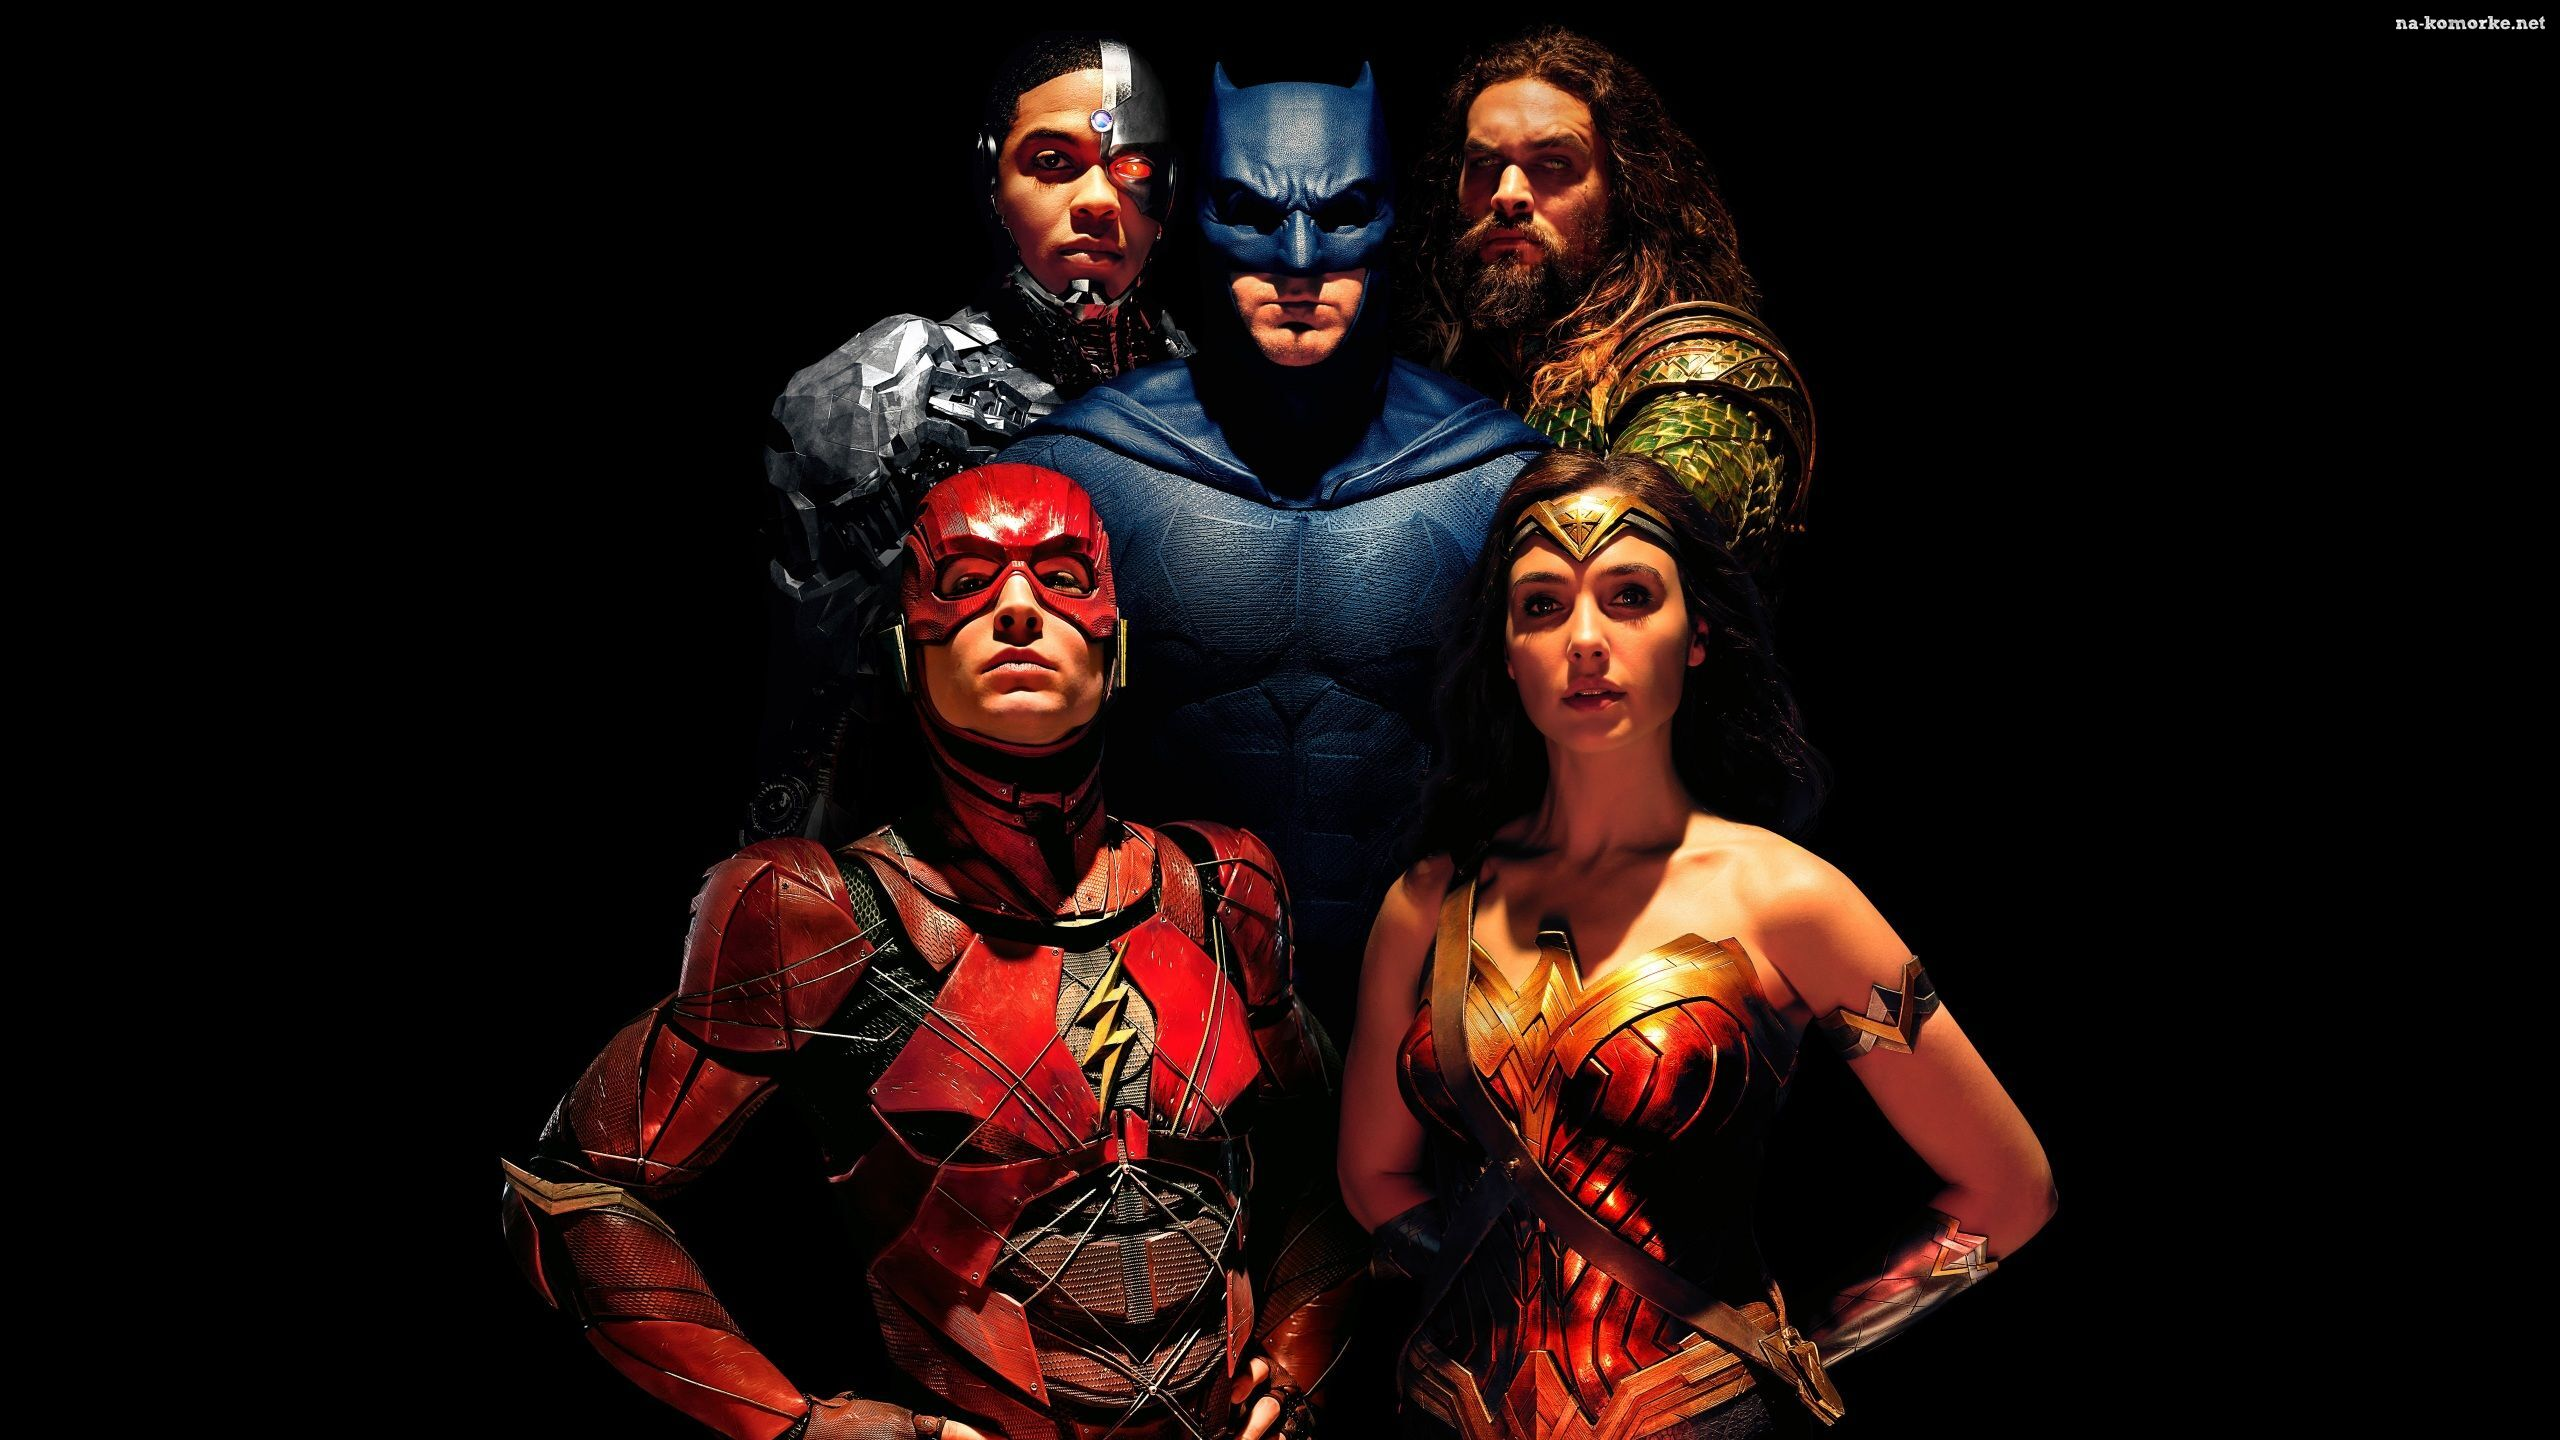 Film, Ezra Miller - Flash, Liga Sprawiedliwości, Gal Gadot - Wonder Woman, Justice League, Ray Fisher - Cyborg, Ben Affleck - Batman, Jason Momoa - Aquaman